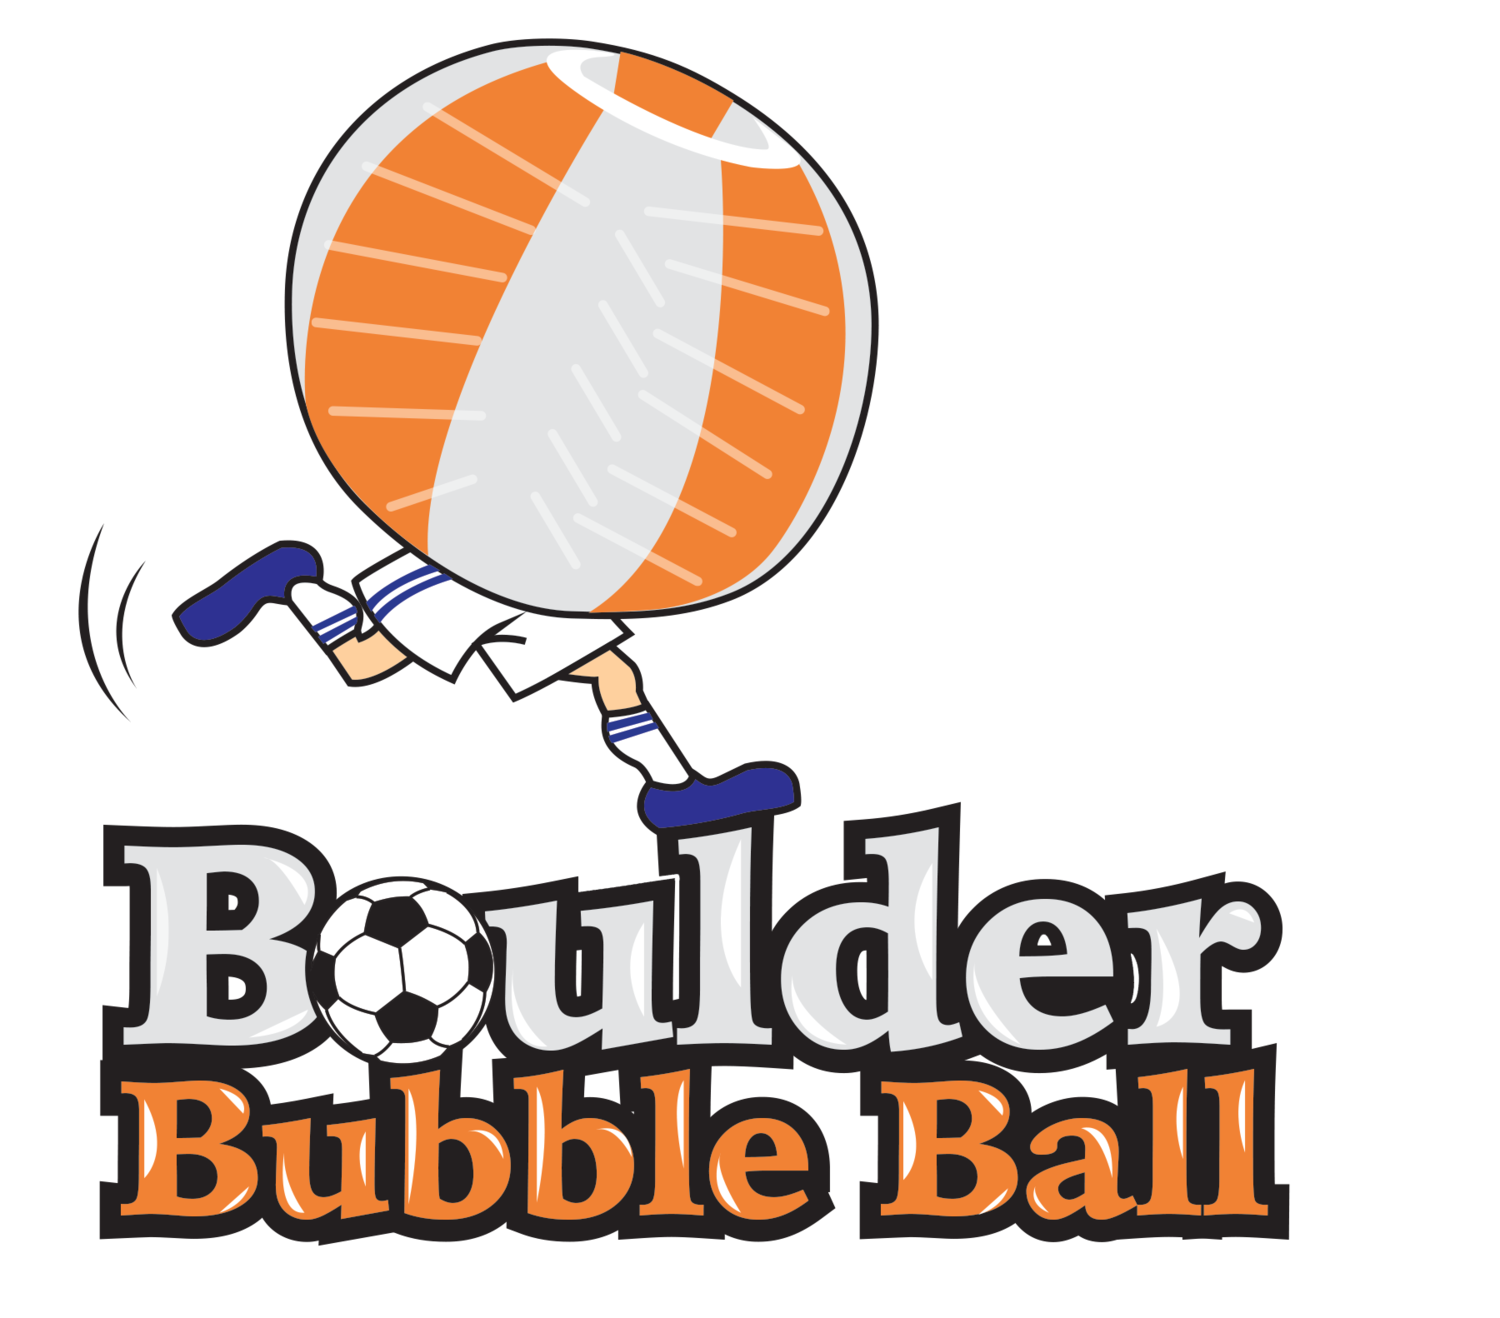 Boulder Bubble Ball